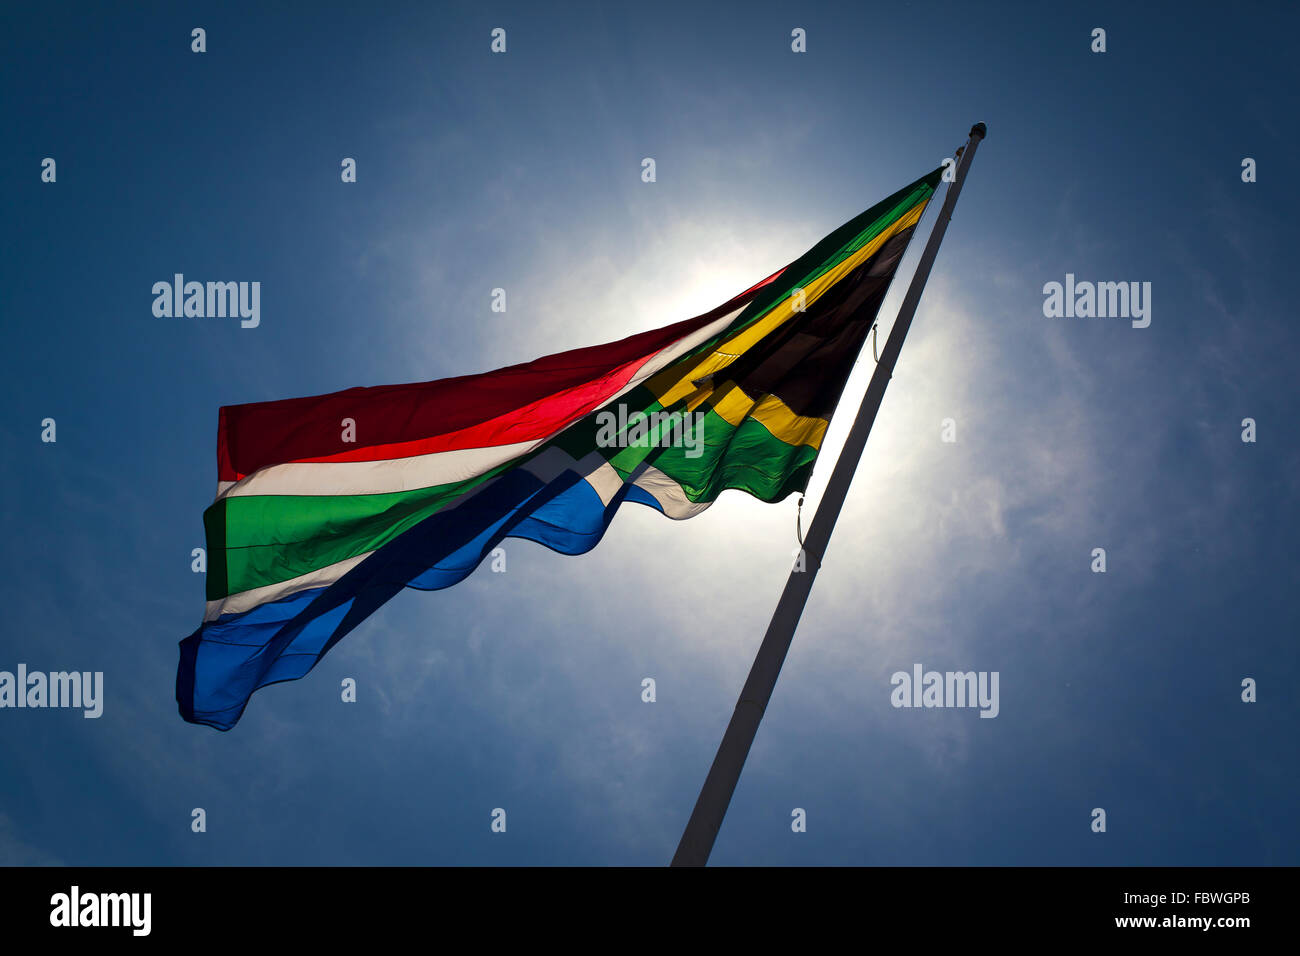 The South-African flag. - Stock Image